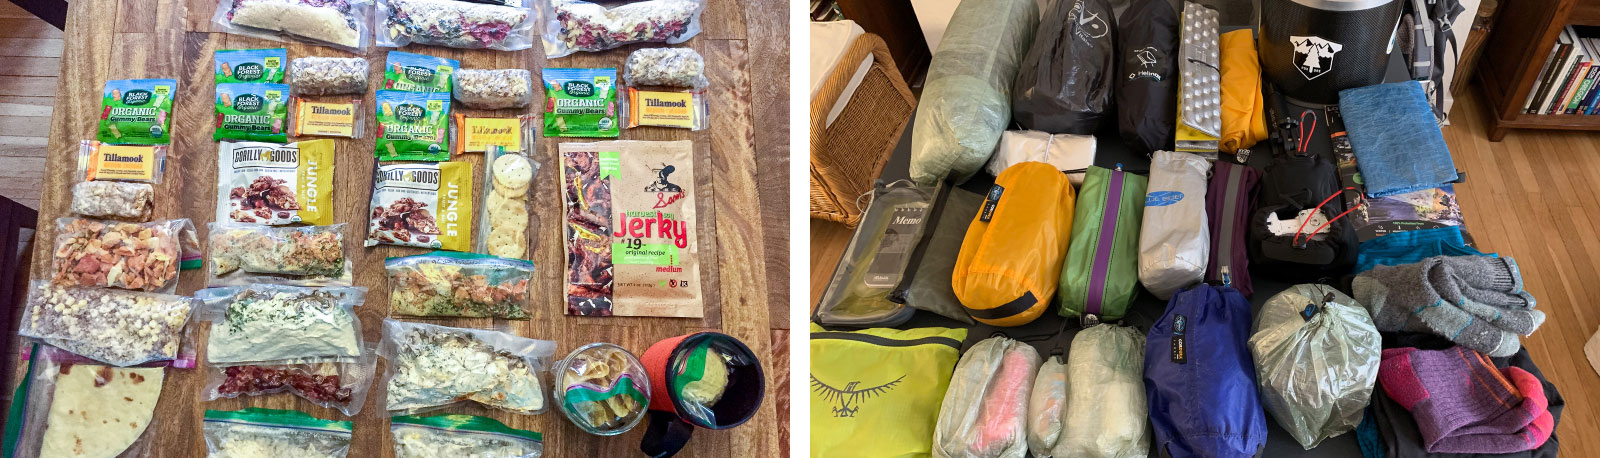 prepare gear and food for backpacking